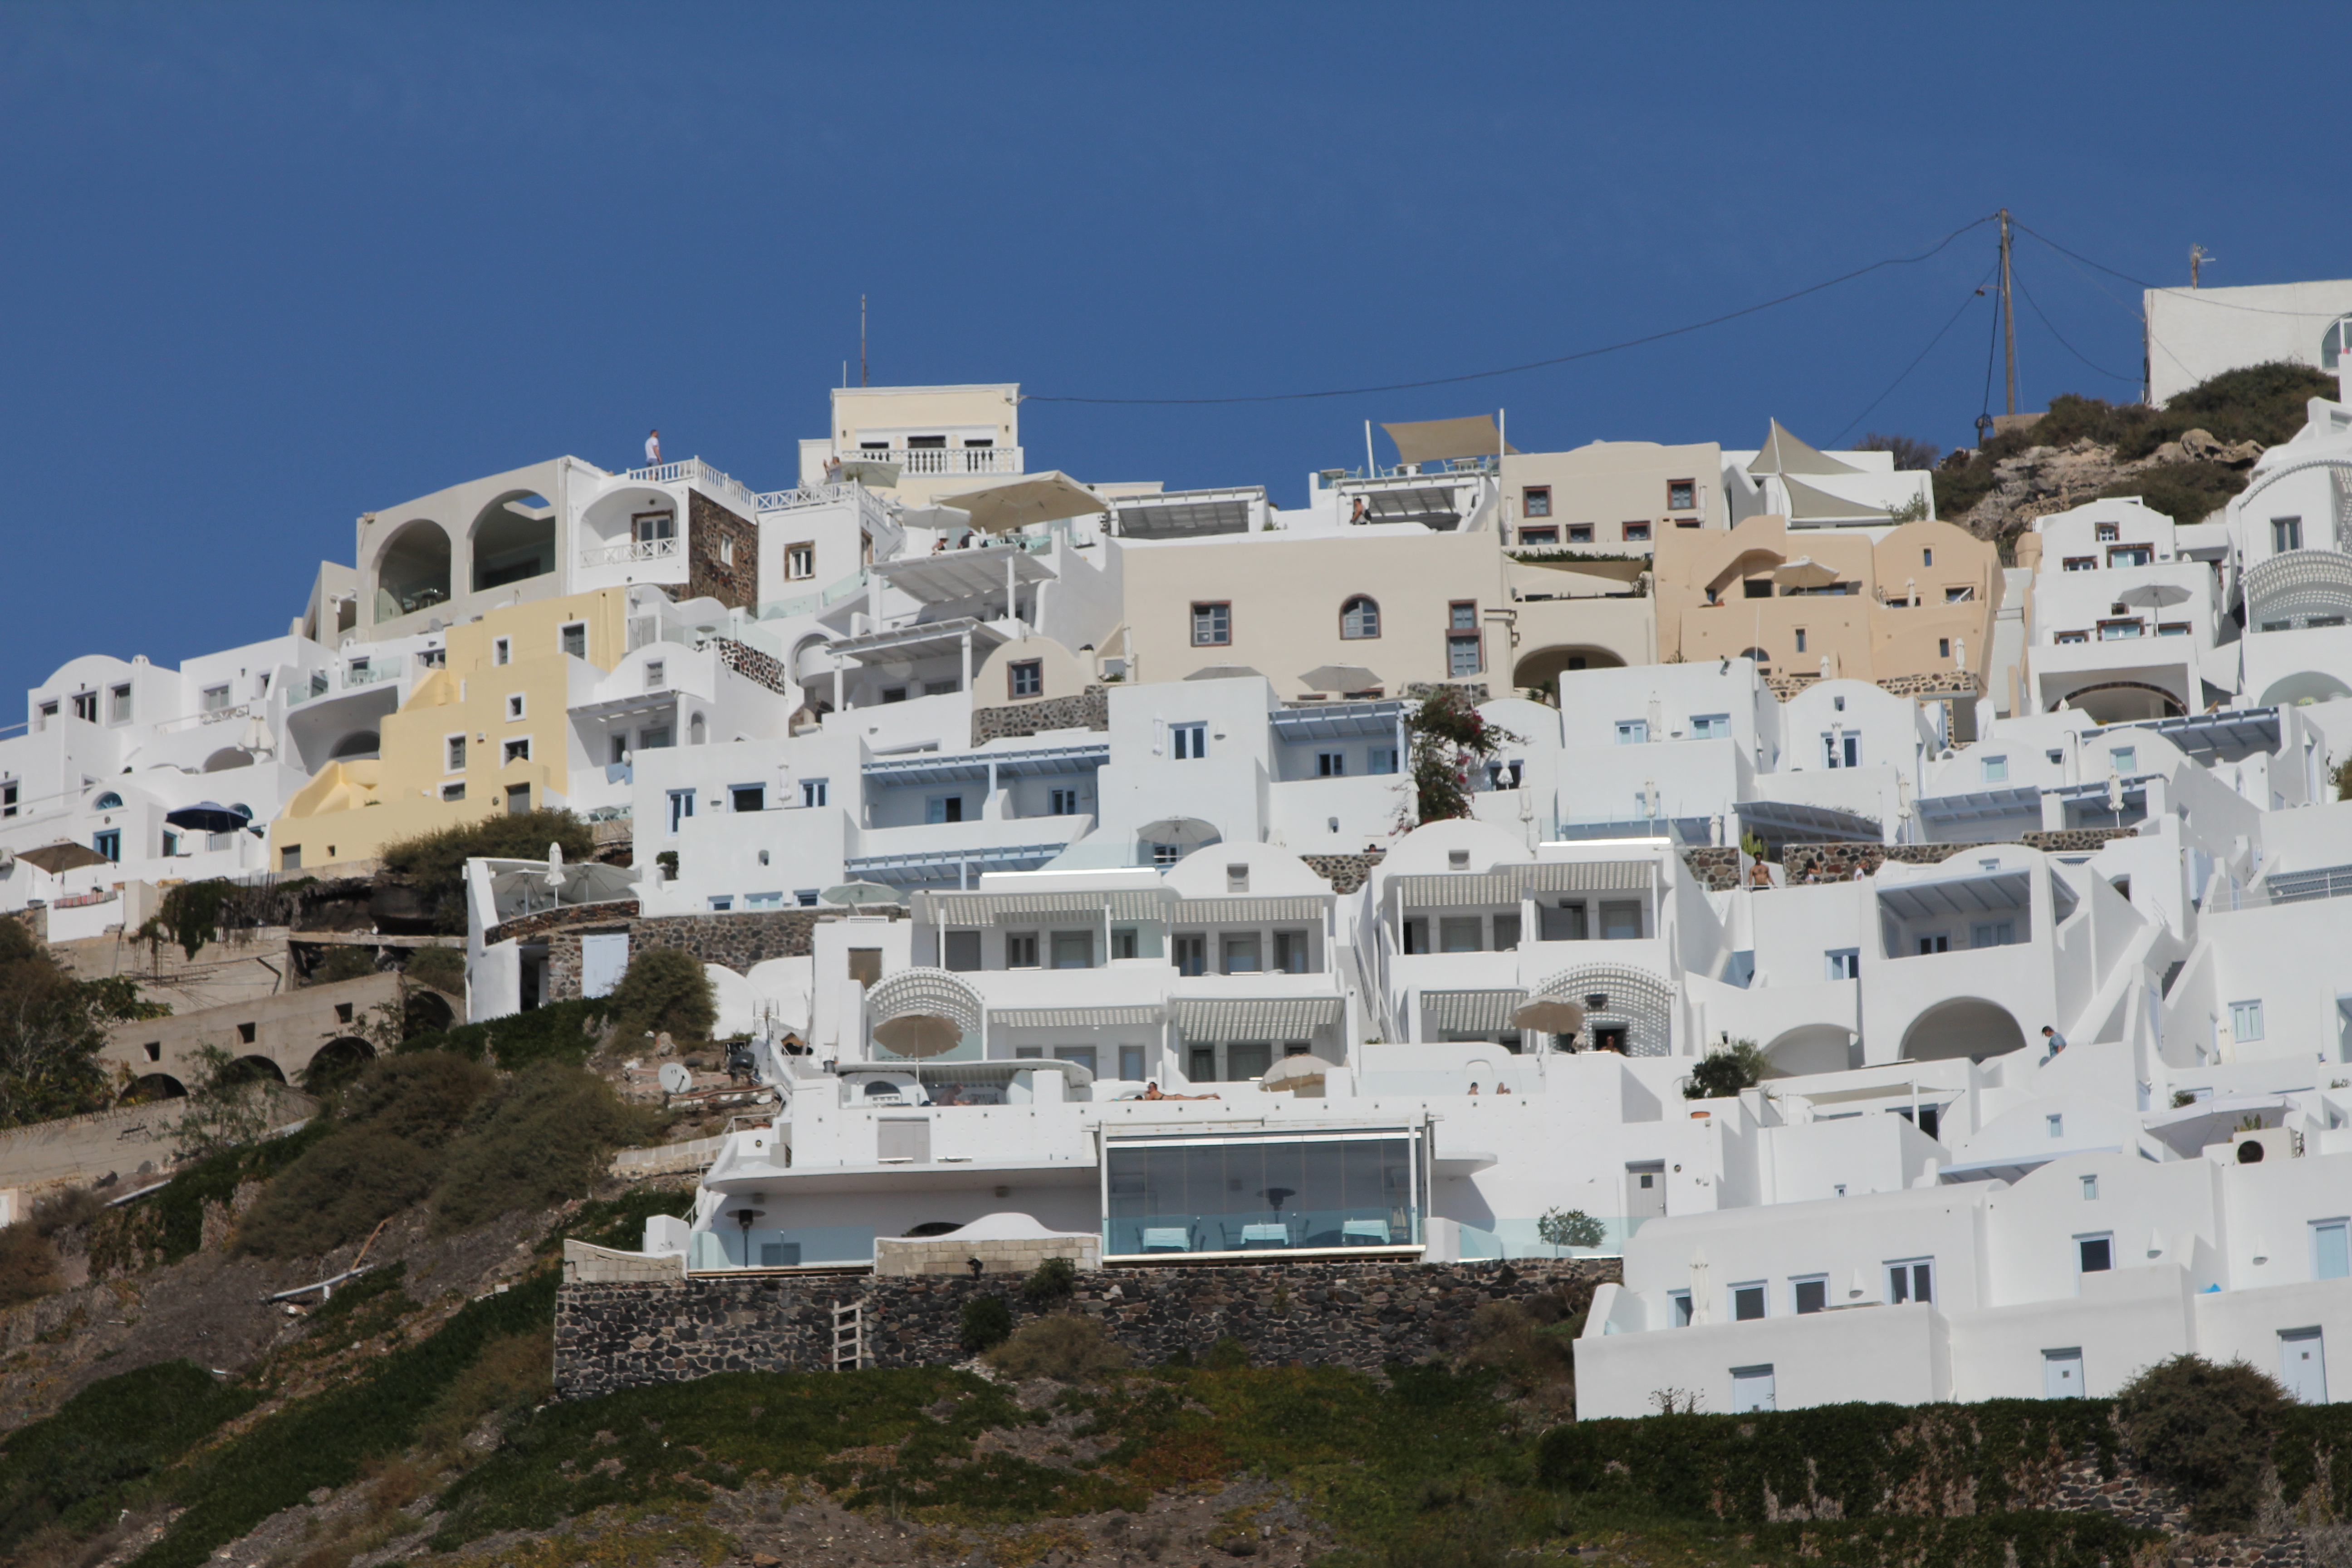 First Time to Santorini-3 Day Guide